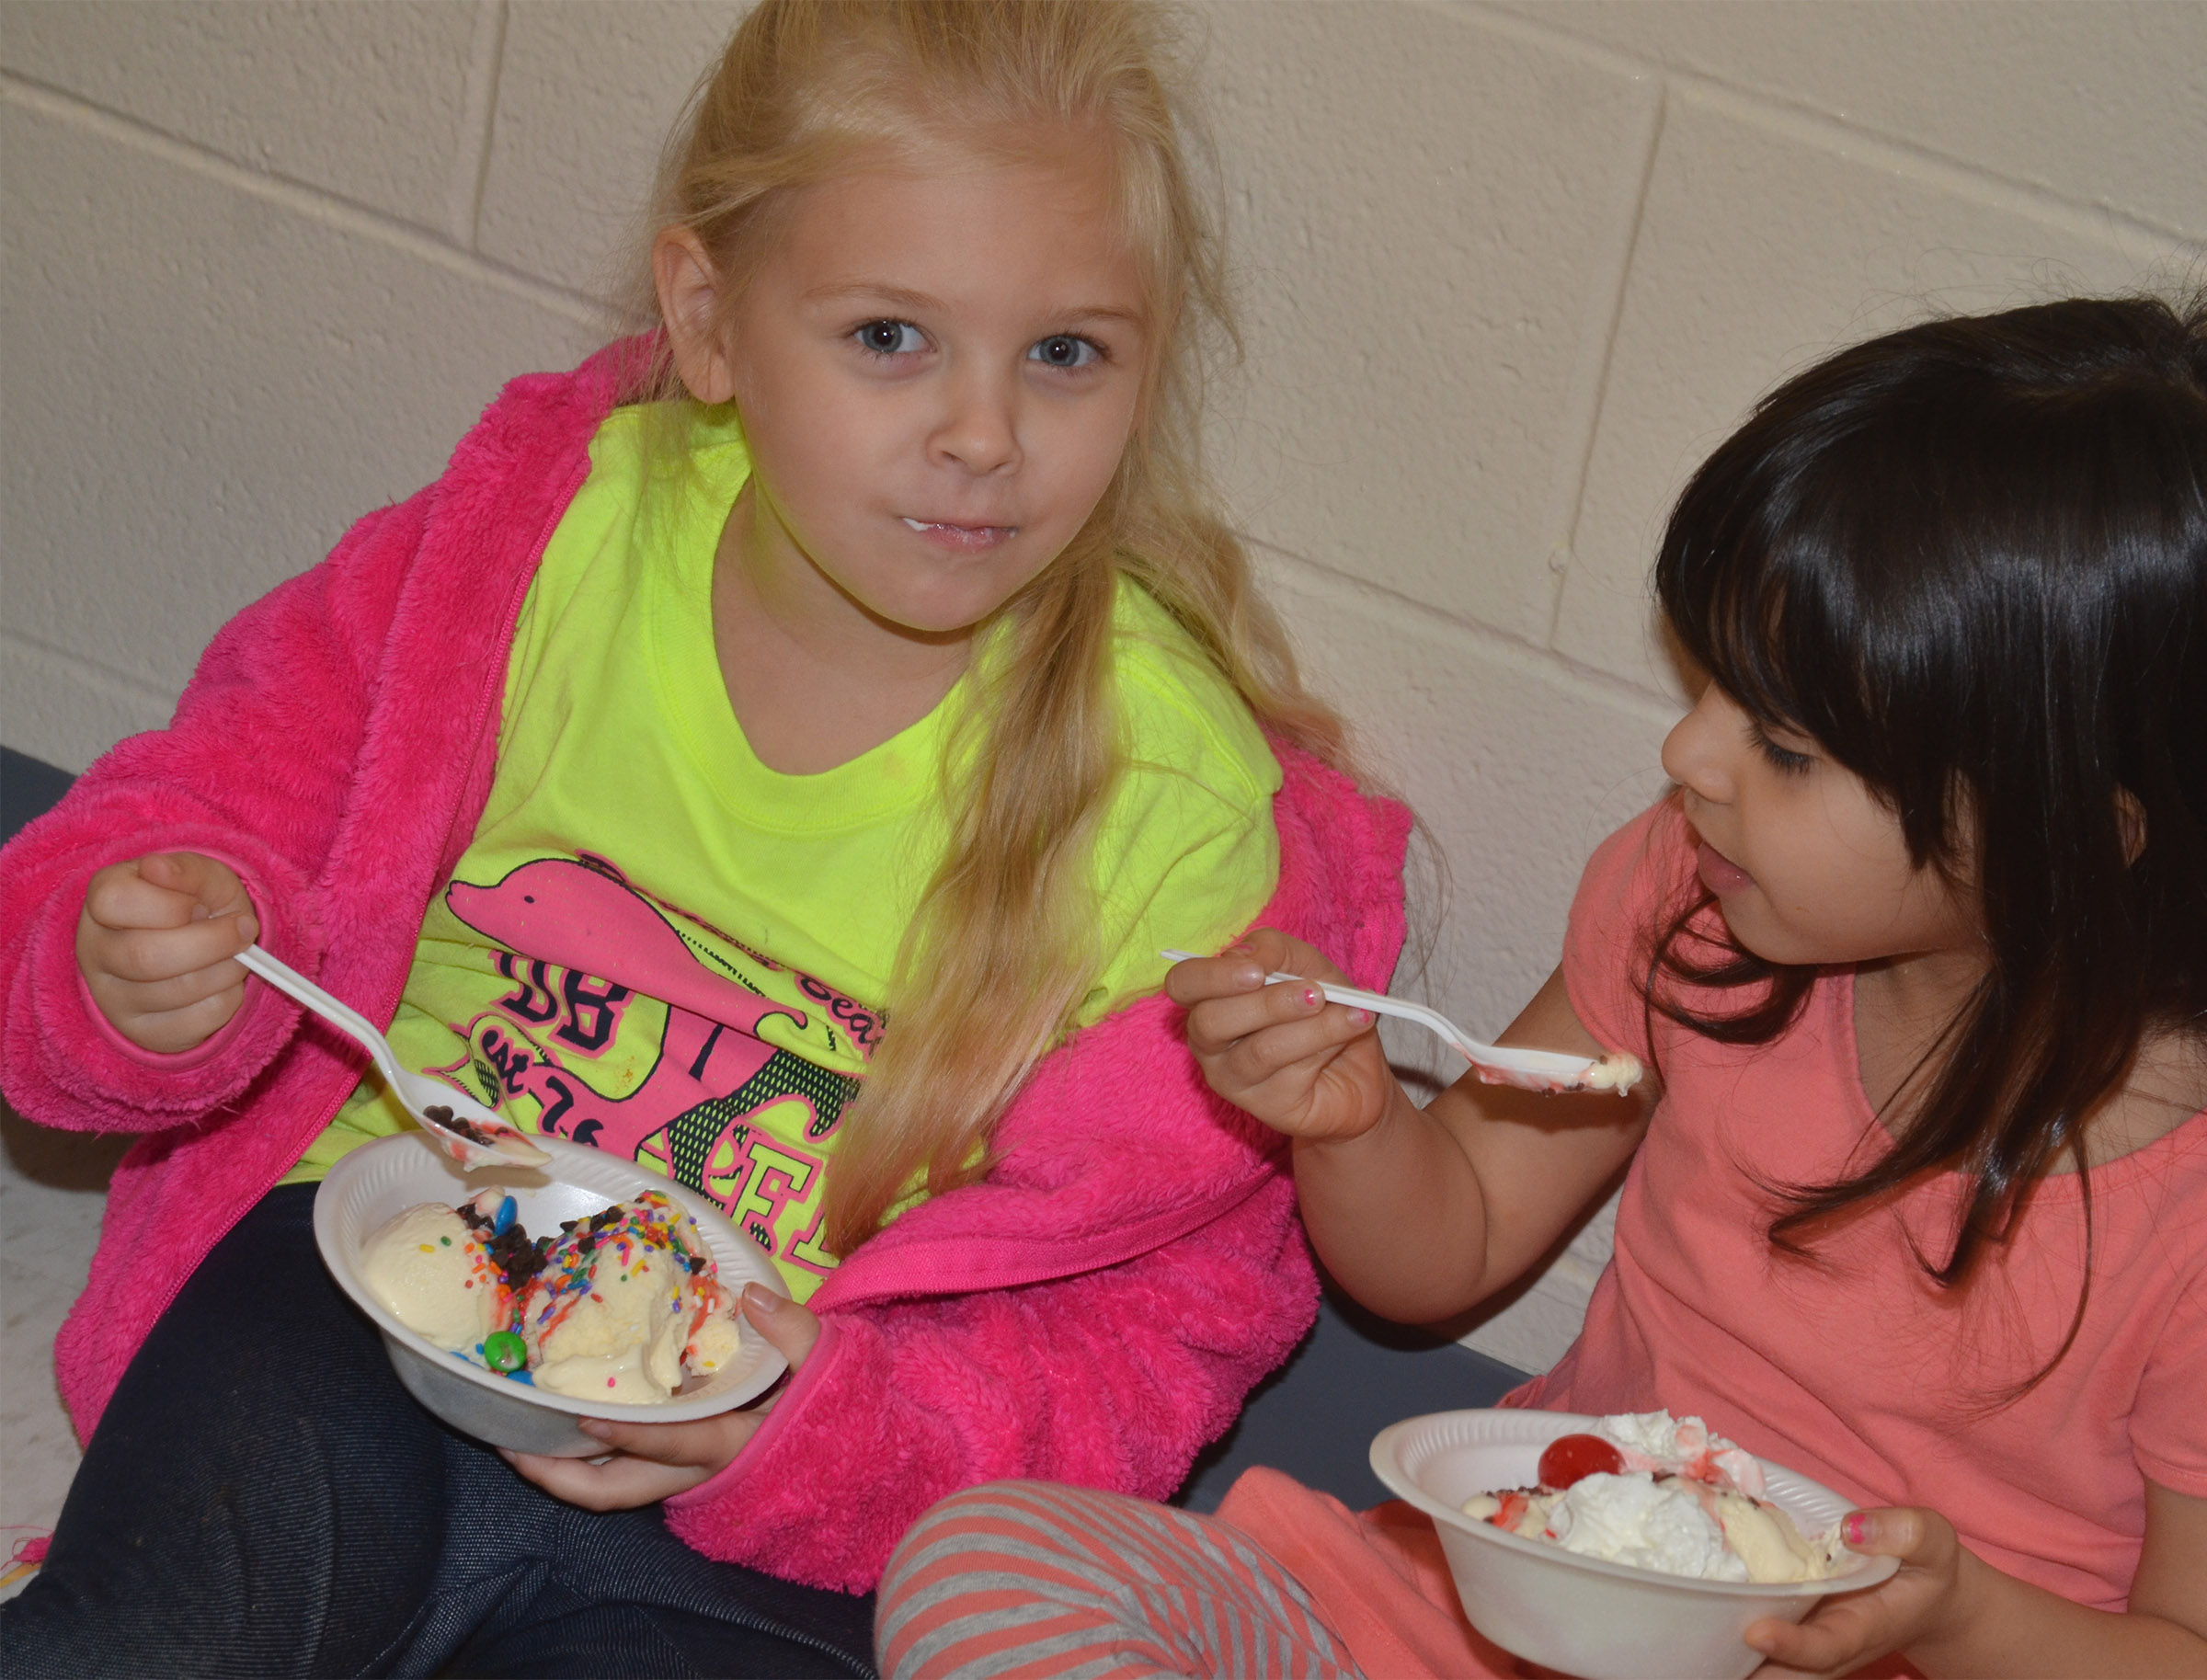 CES kindergarteners Aubrey Novak, at left, and Carol Moura talk as they enjoy their ice cream sundae.